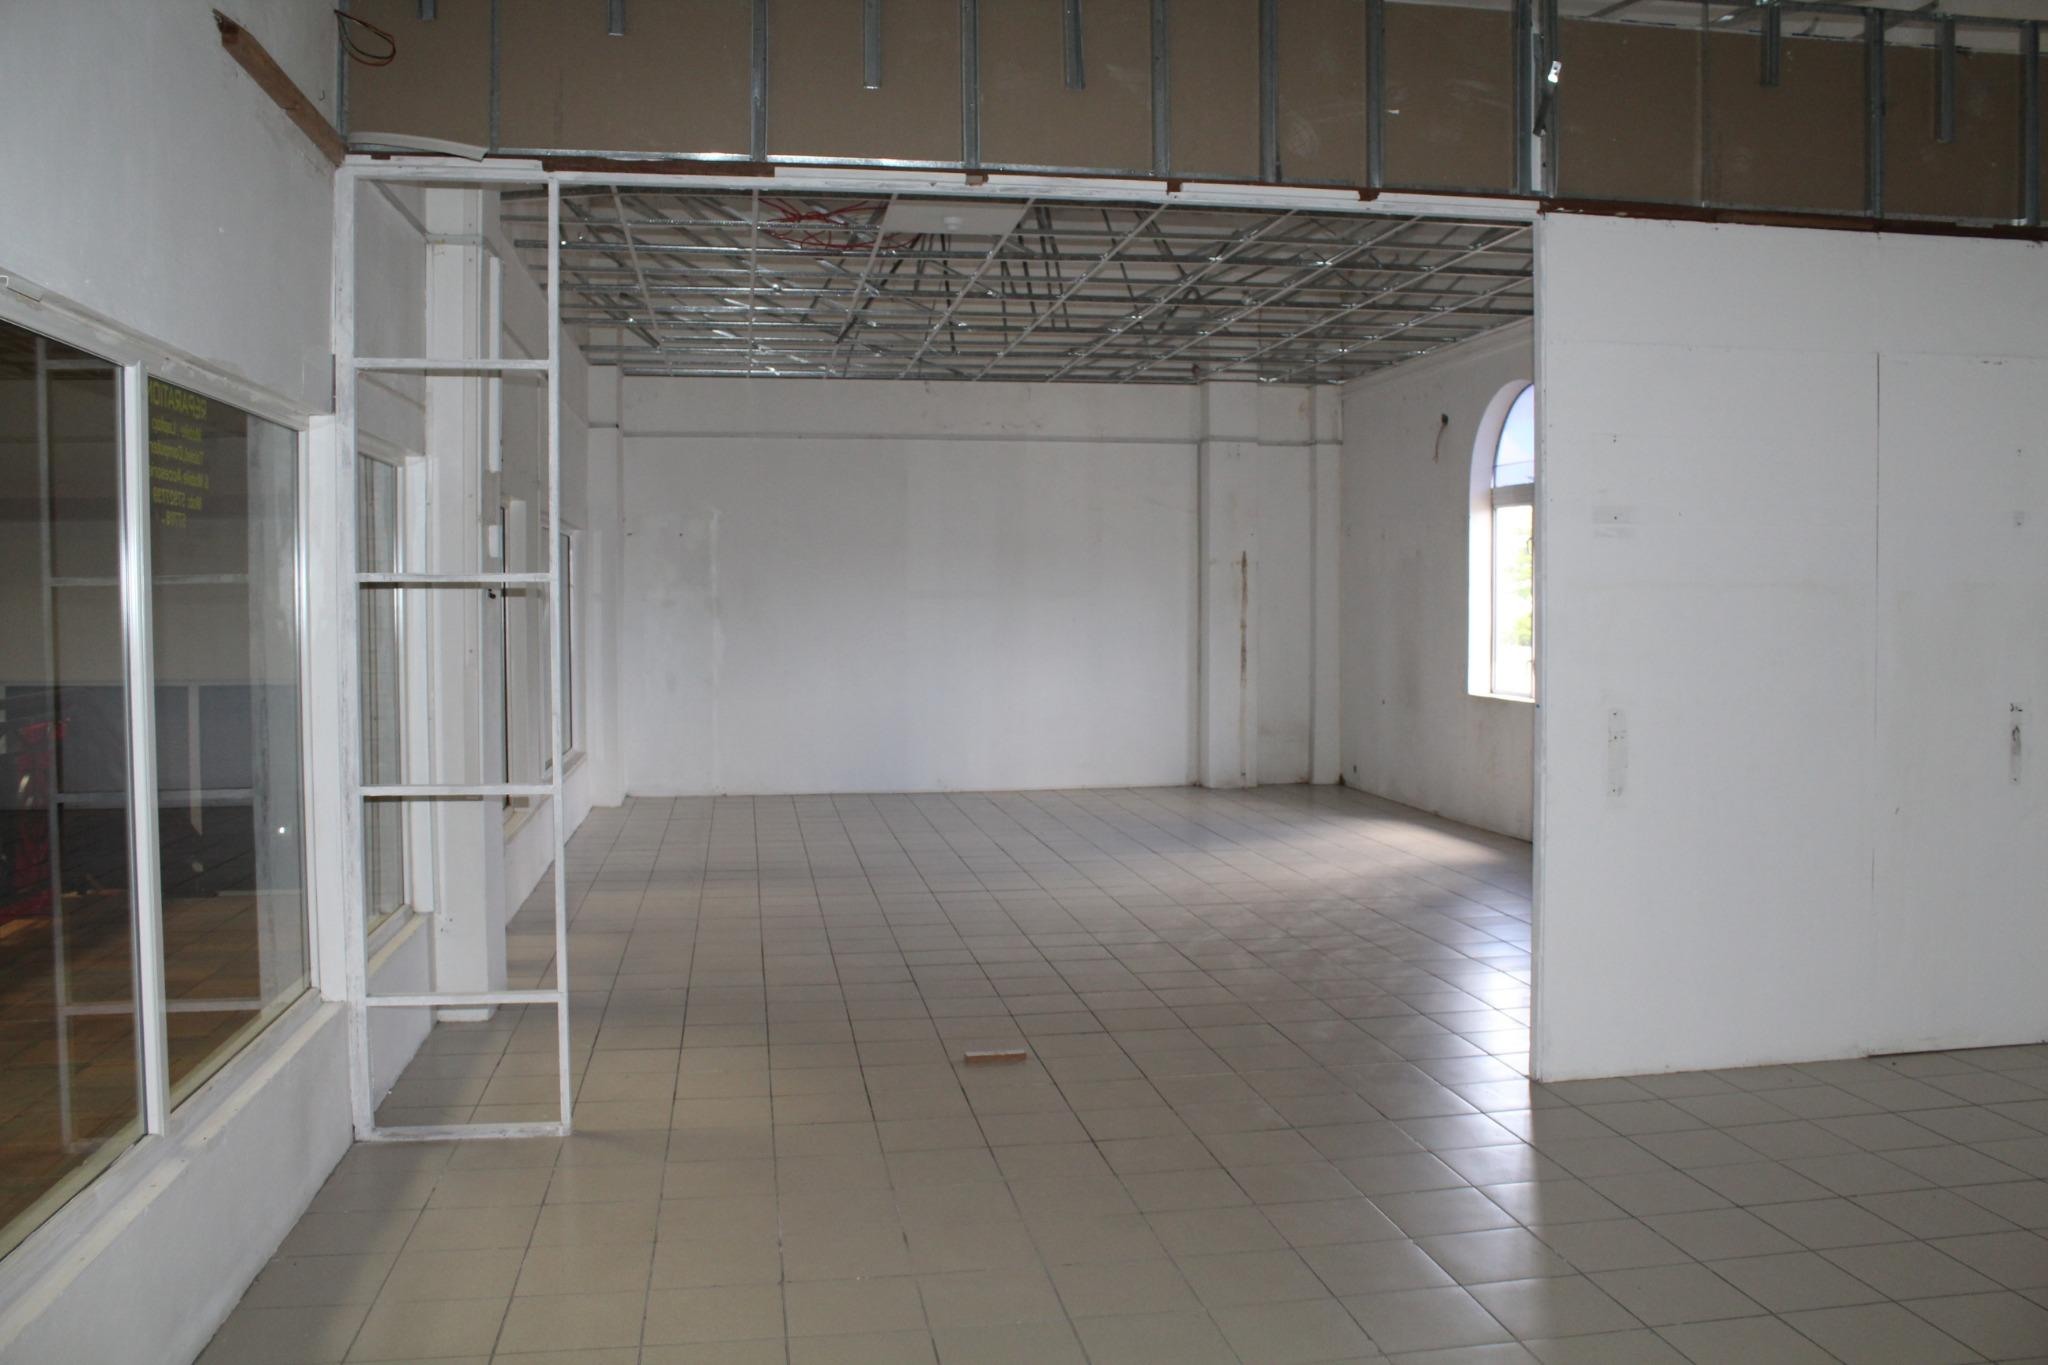 FOR SALE – Commercial space of 86 m2 in the Shopping Center 'Vieux Moulin' Rose Belle.